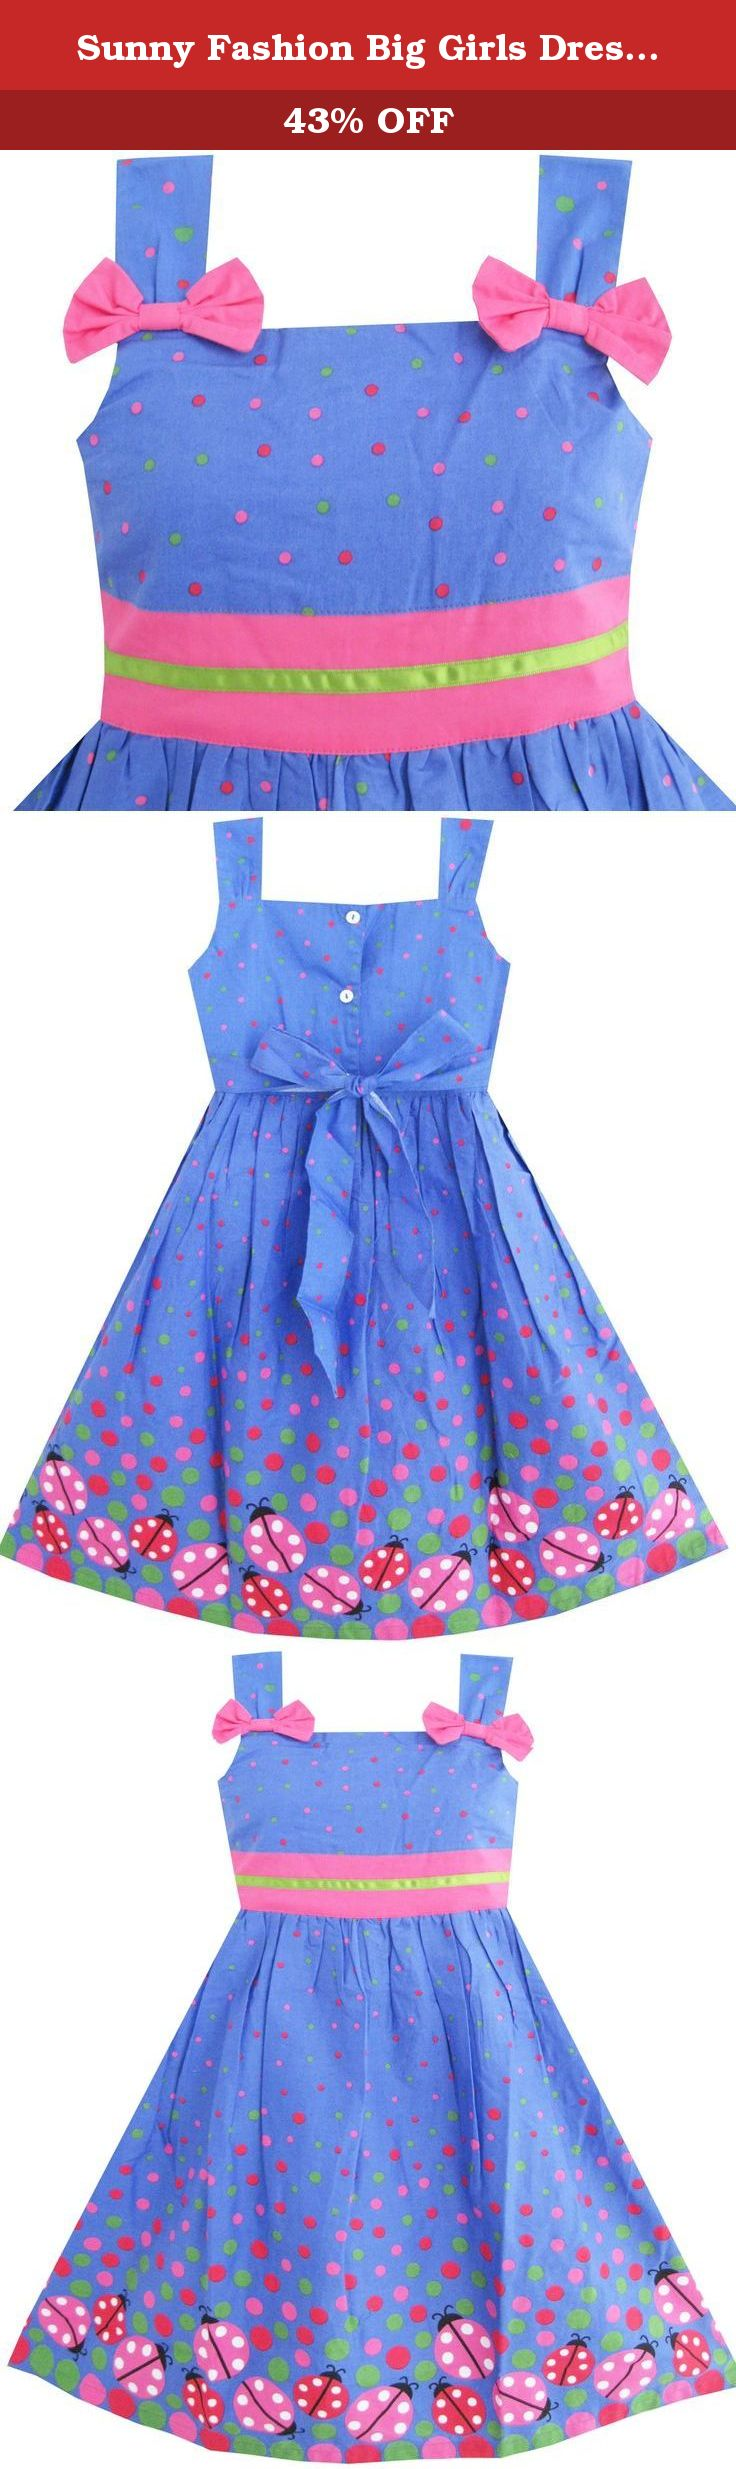 Sunny Fashion Big Girls Dress Bug Pink Dot, Blue, 7. Knee length. Machine washable. Made in china. Following size means age ranges for girls, they are for general guidance only. For most accurate fit, we recommend checking detailed measurement before purchase.